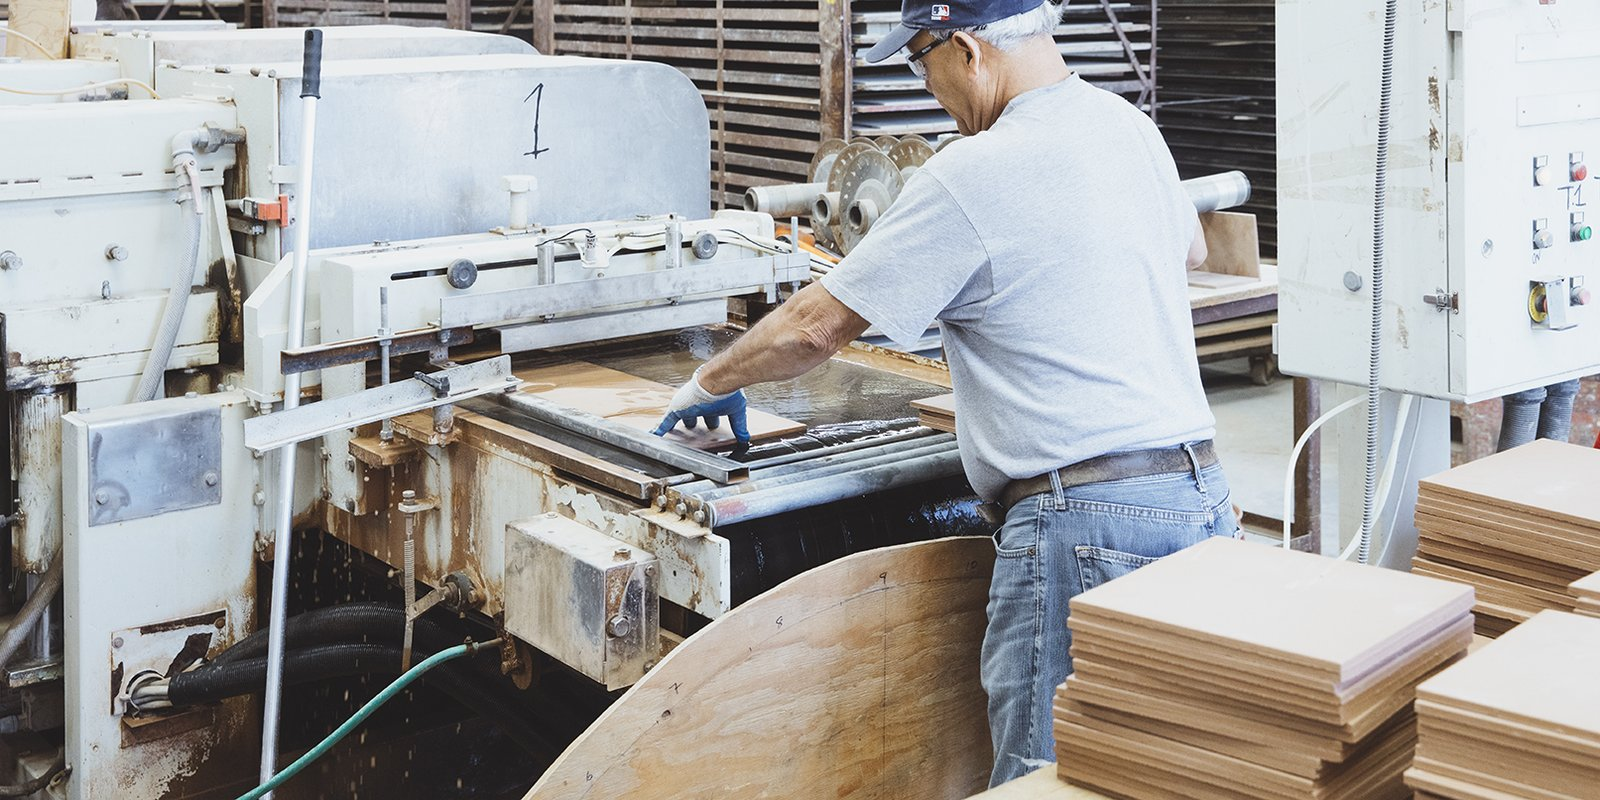 Photo 1 of 14 in Go Behind the Scenes With a Process-Driven Handmade-Tile Company in California